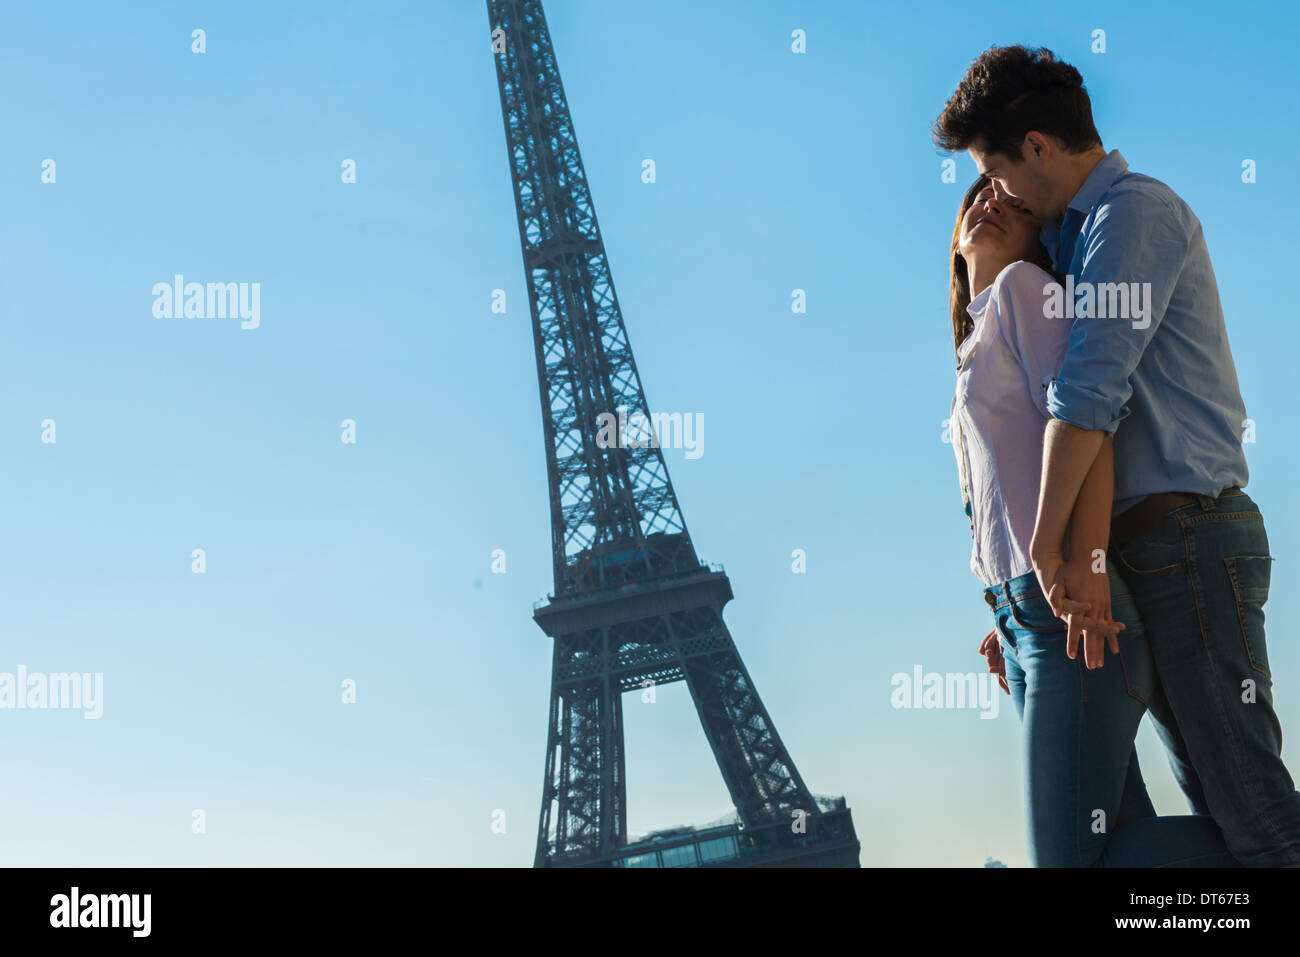 Young couple embracing near Eiffel Tower, Paris, France Stock Photo